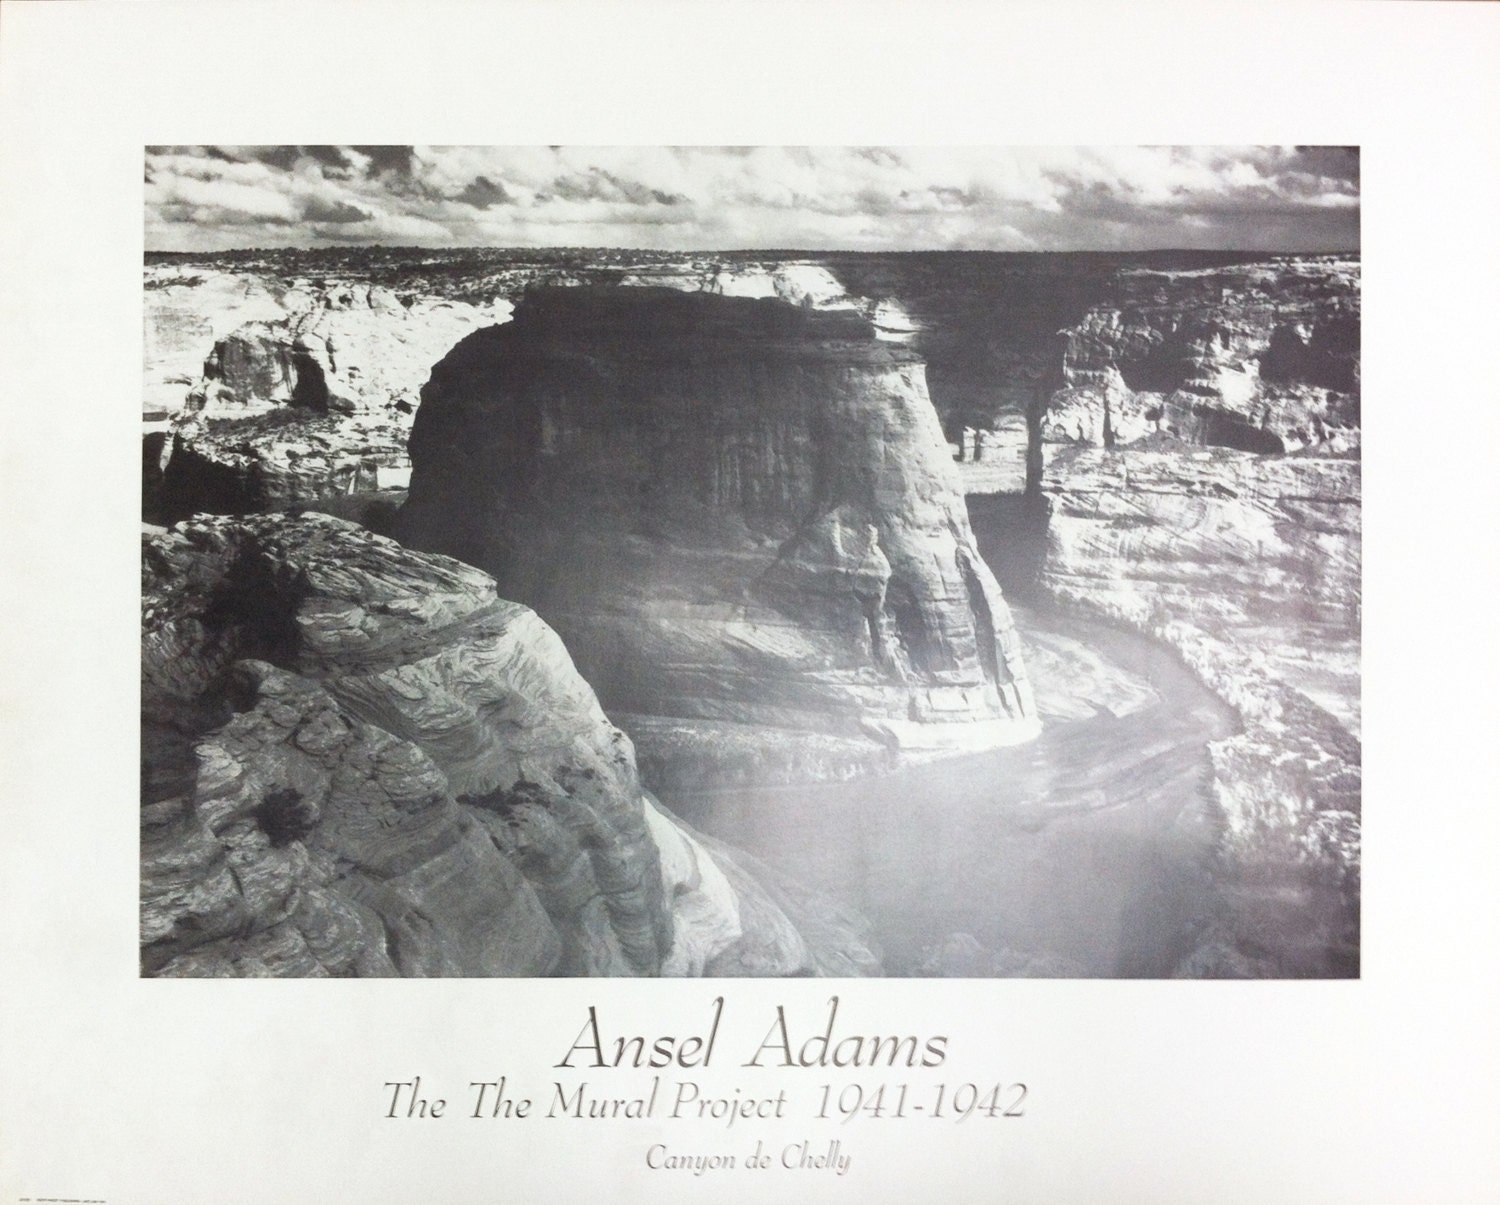 Ansel adams canyon de chelly the mural project for Ansel adams mural project 1941 to 1942